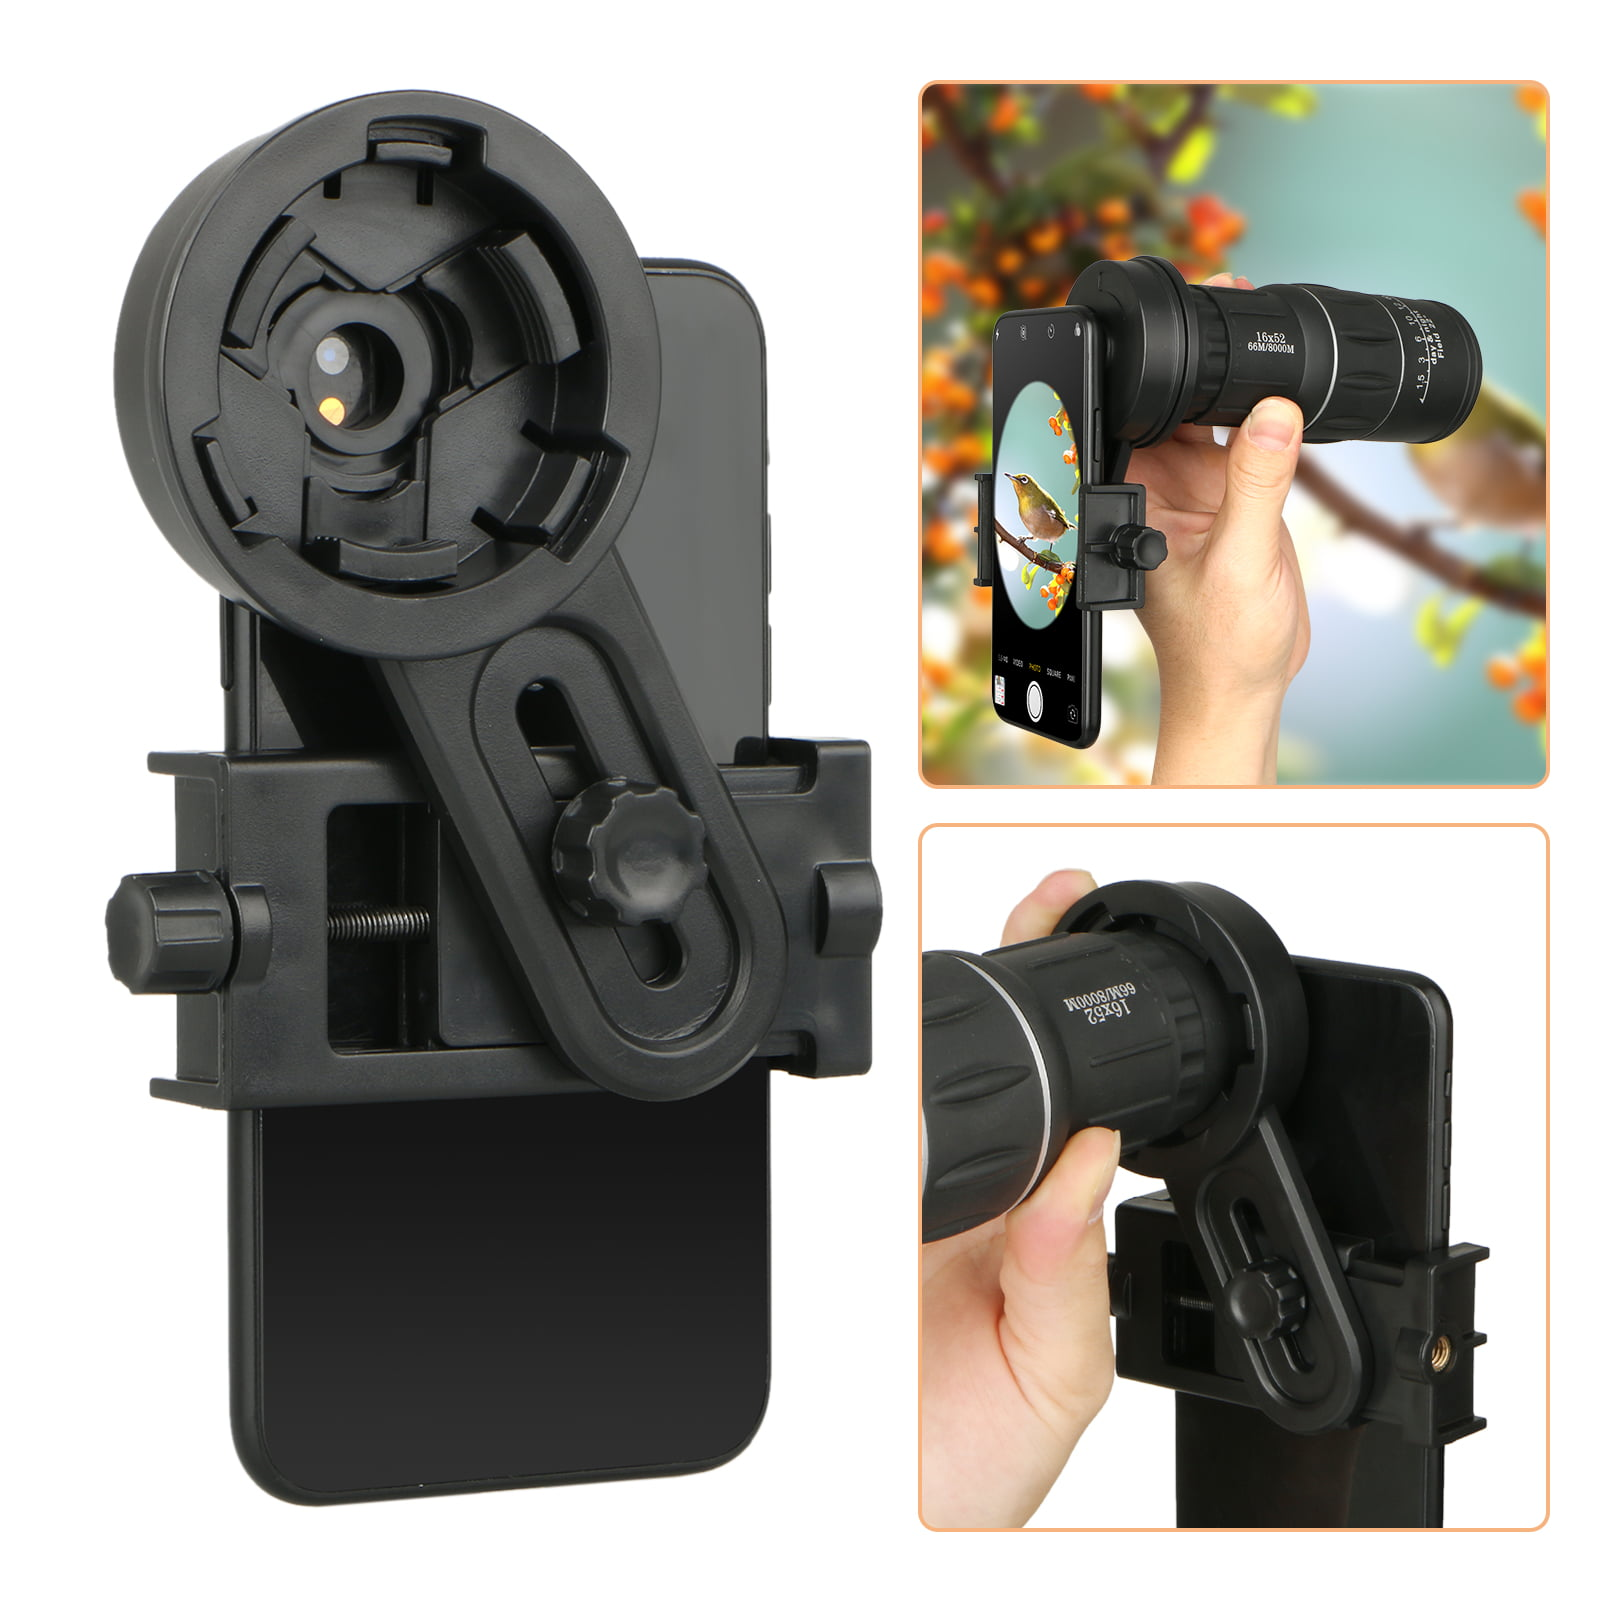 2 Pieces Universal Cell Phone Smartphone Quick Photography Adapter Mount Connector for Telescope Binoculars Monocular Spotting Scope Microscope /& and with Cell Mobile Phone